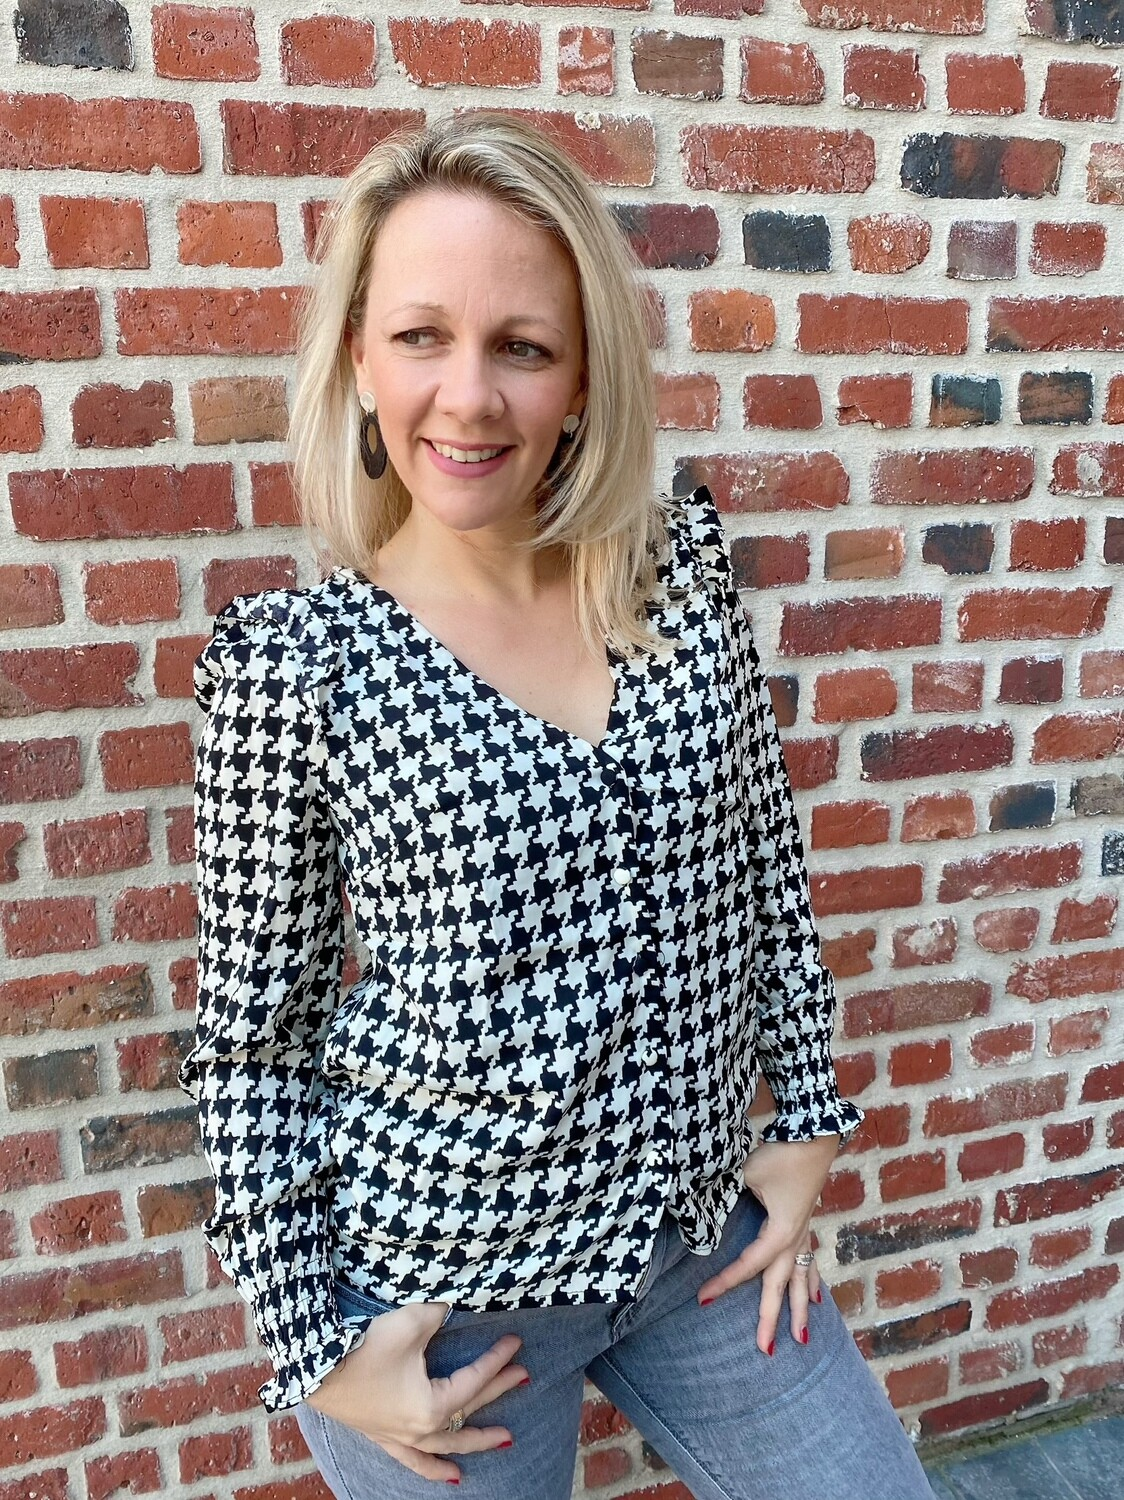 Jolie checked blouse